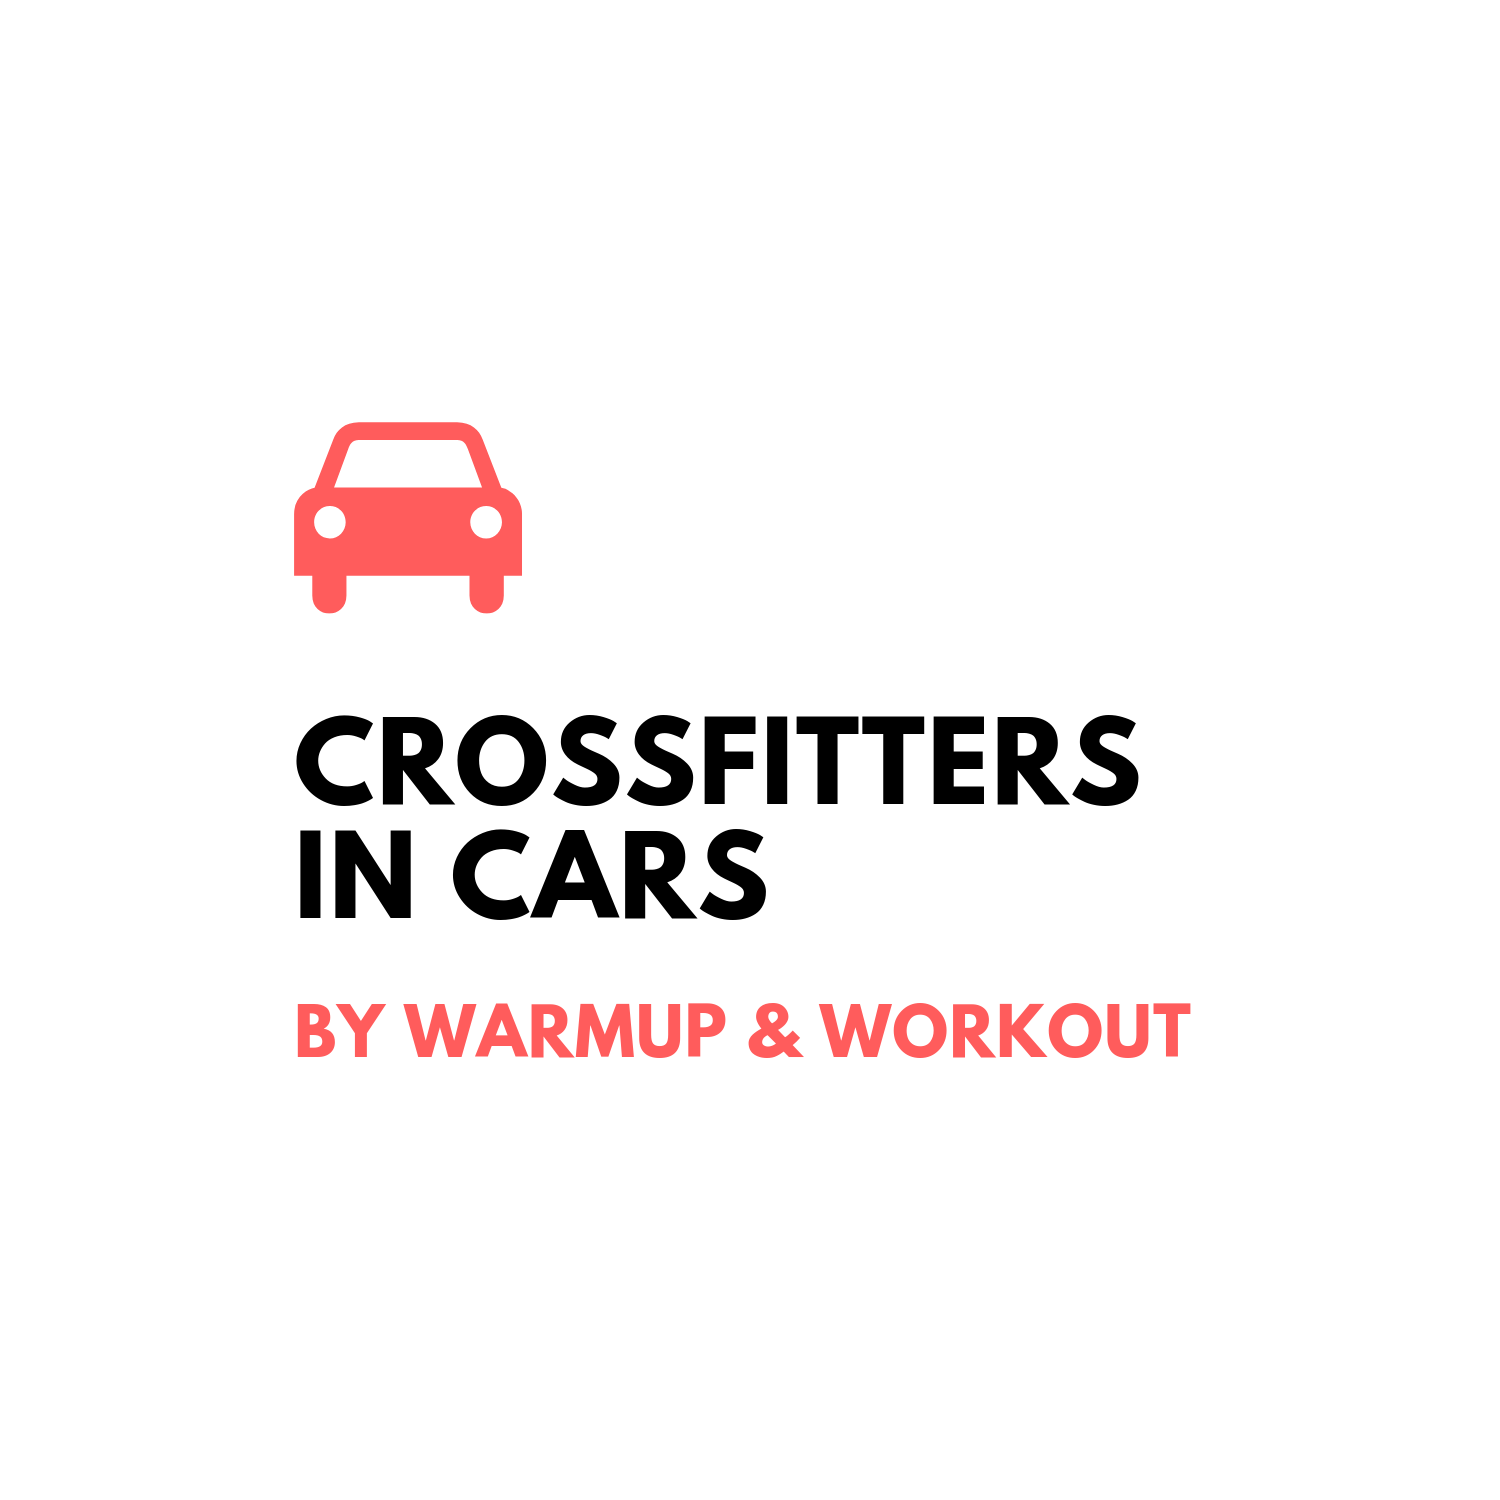 CrossFitters In Cars by Pat Barber - Warmup and Workout on